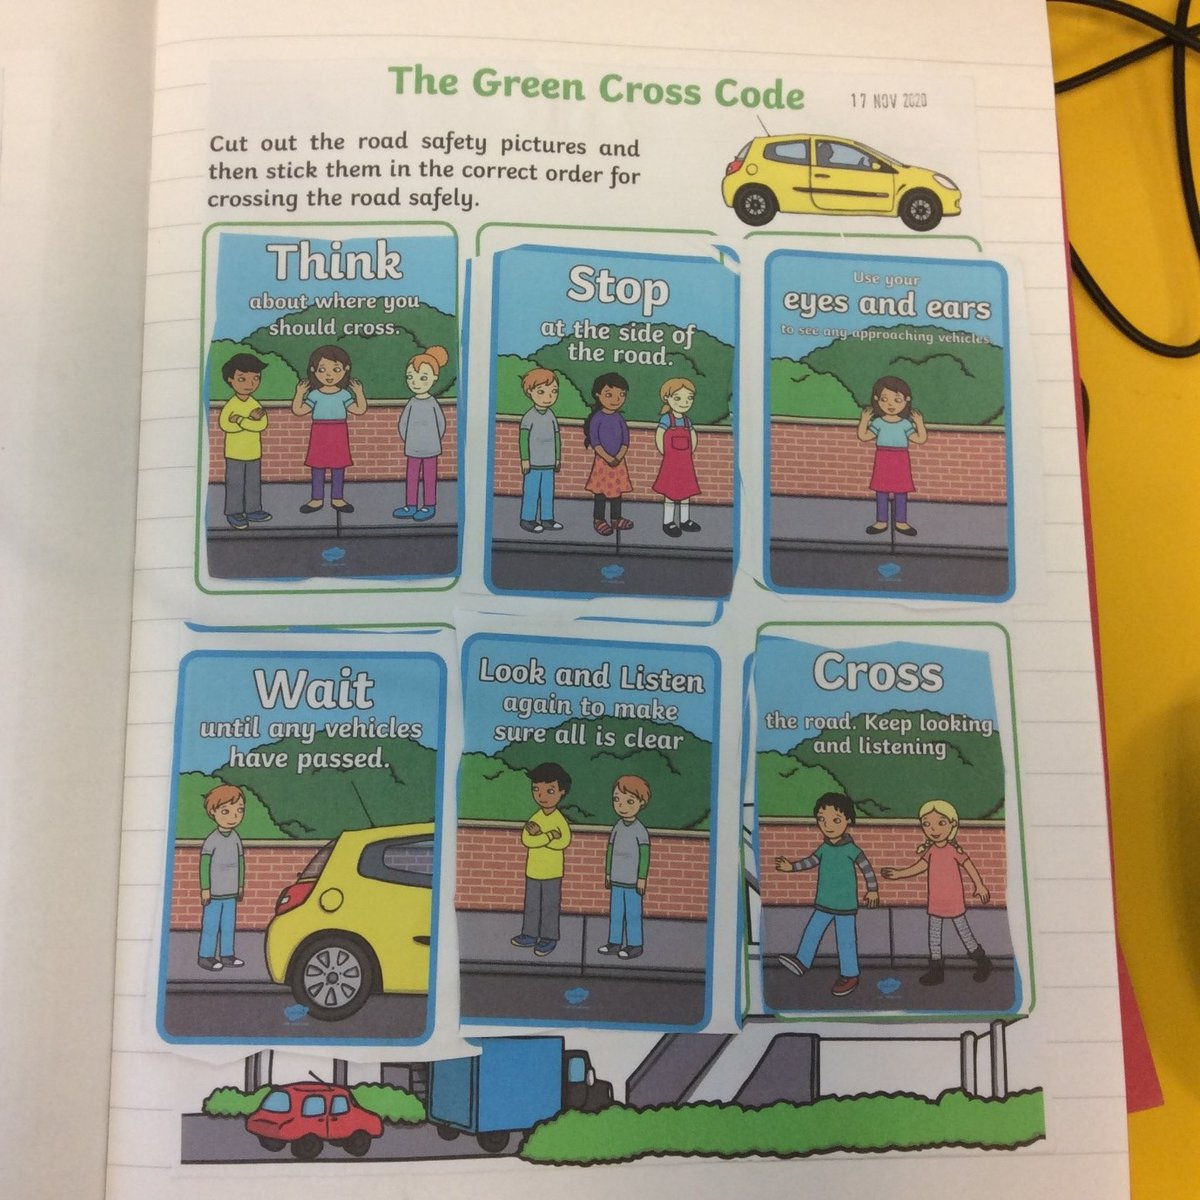 As part of our road safety work last week, our pupils had to order these pictures to show how to cross a road safely! We've been having lots of great discussions about the importance of each step. 😊🚗🚦 #RoadSafety